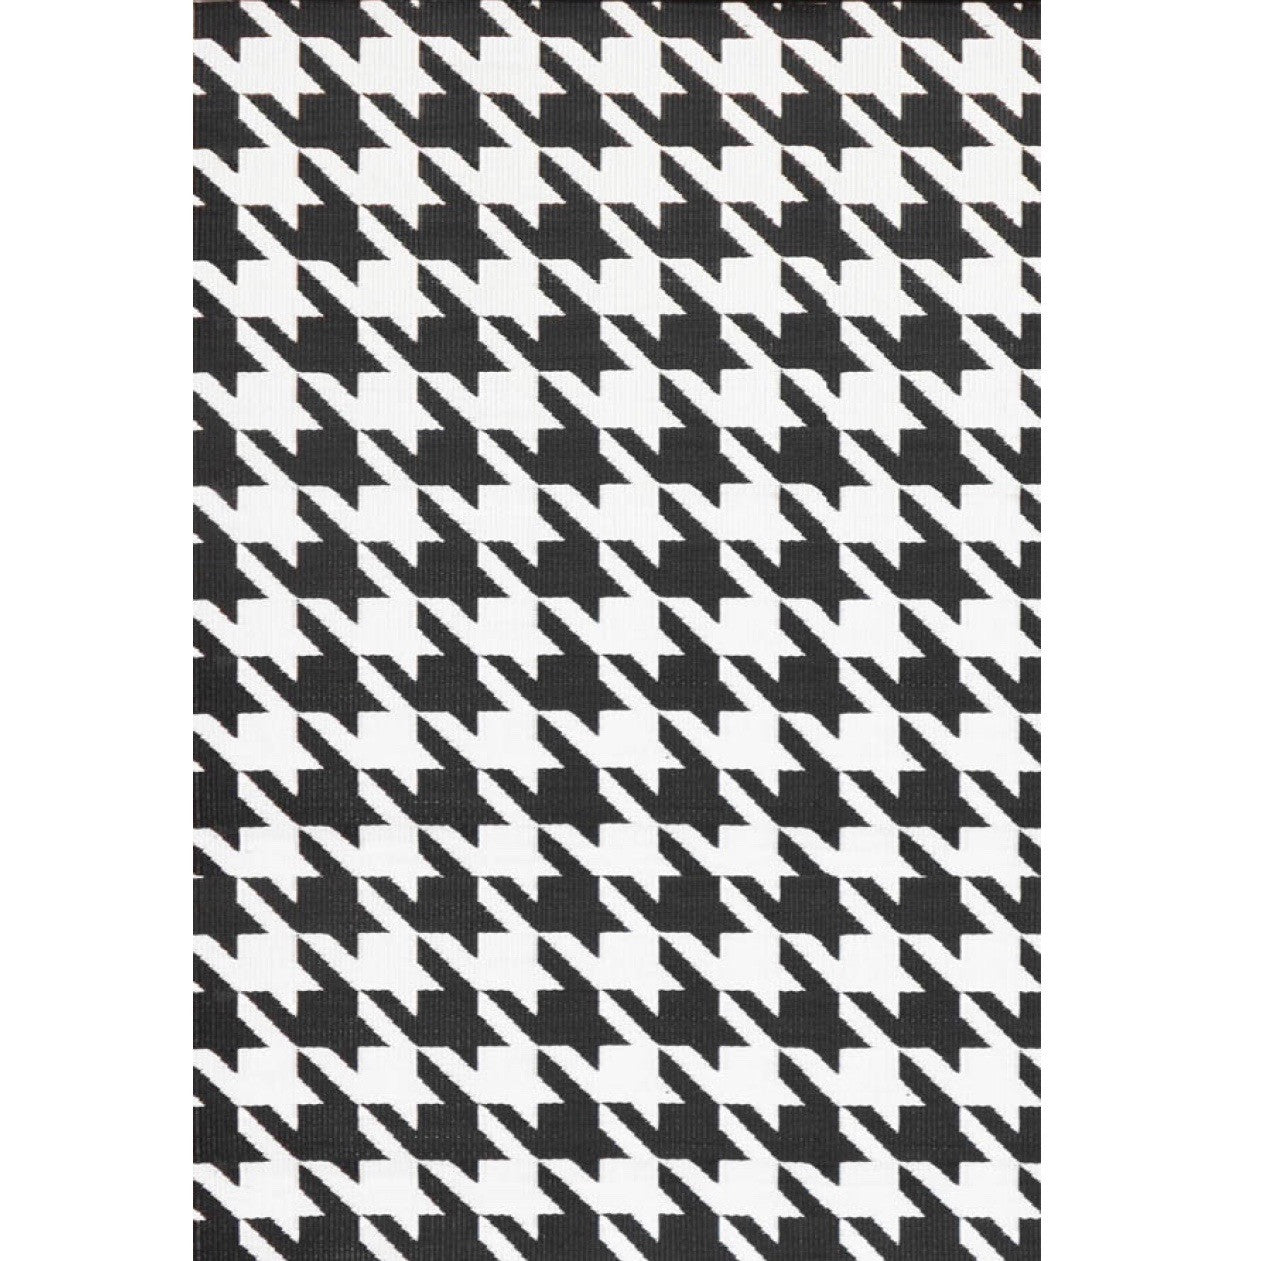 Mad Mats Outdoor Carpet Houndstooth